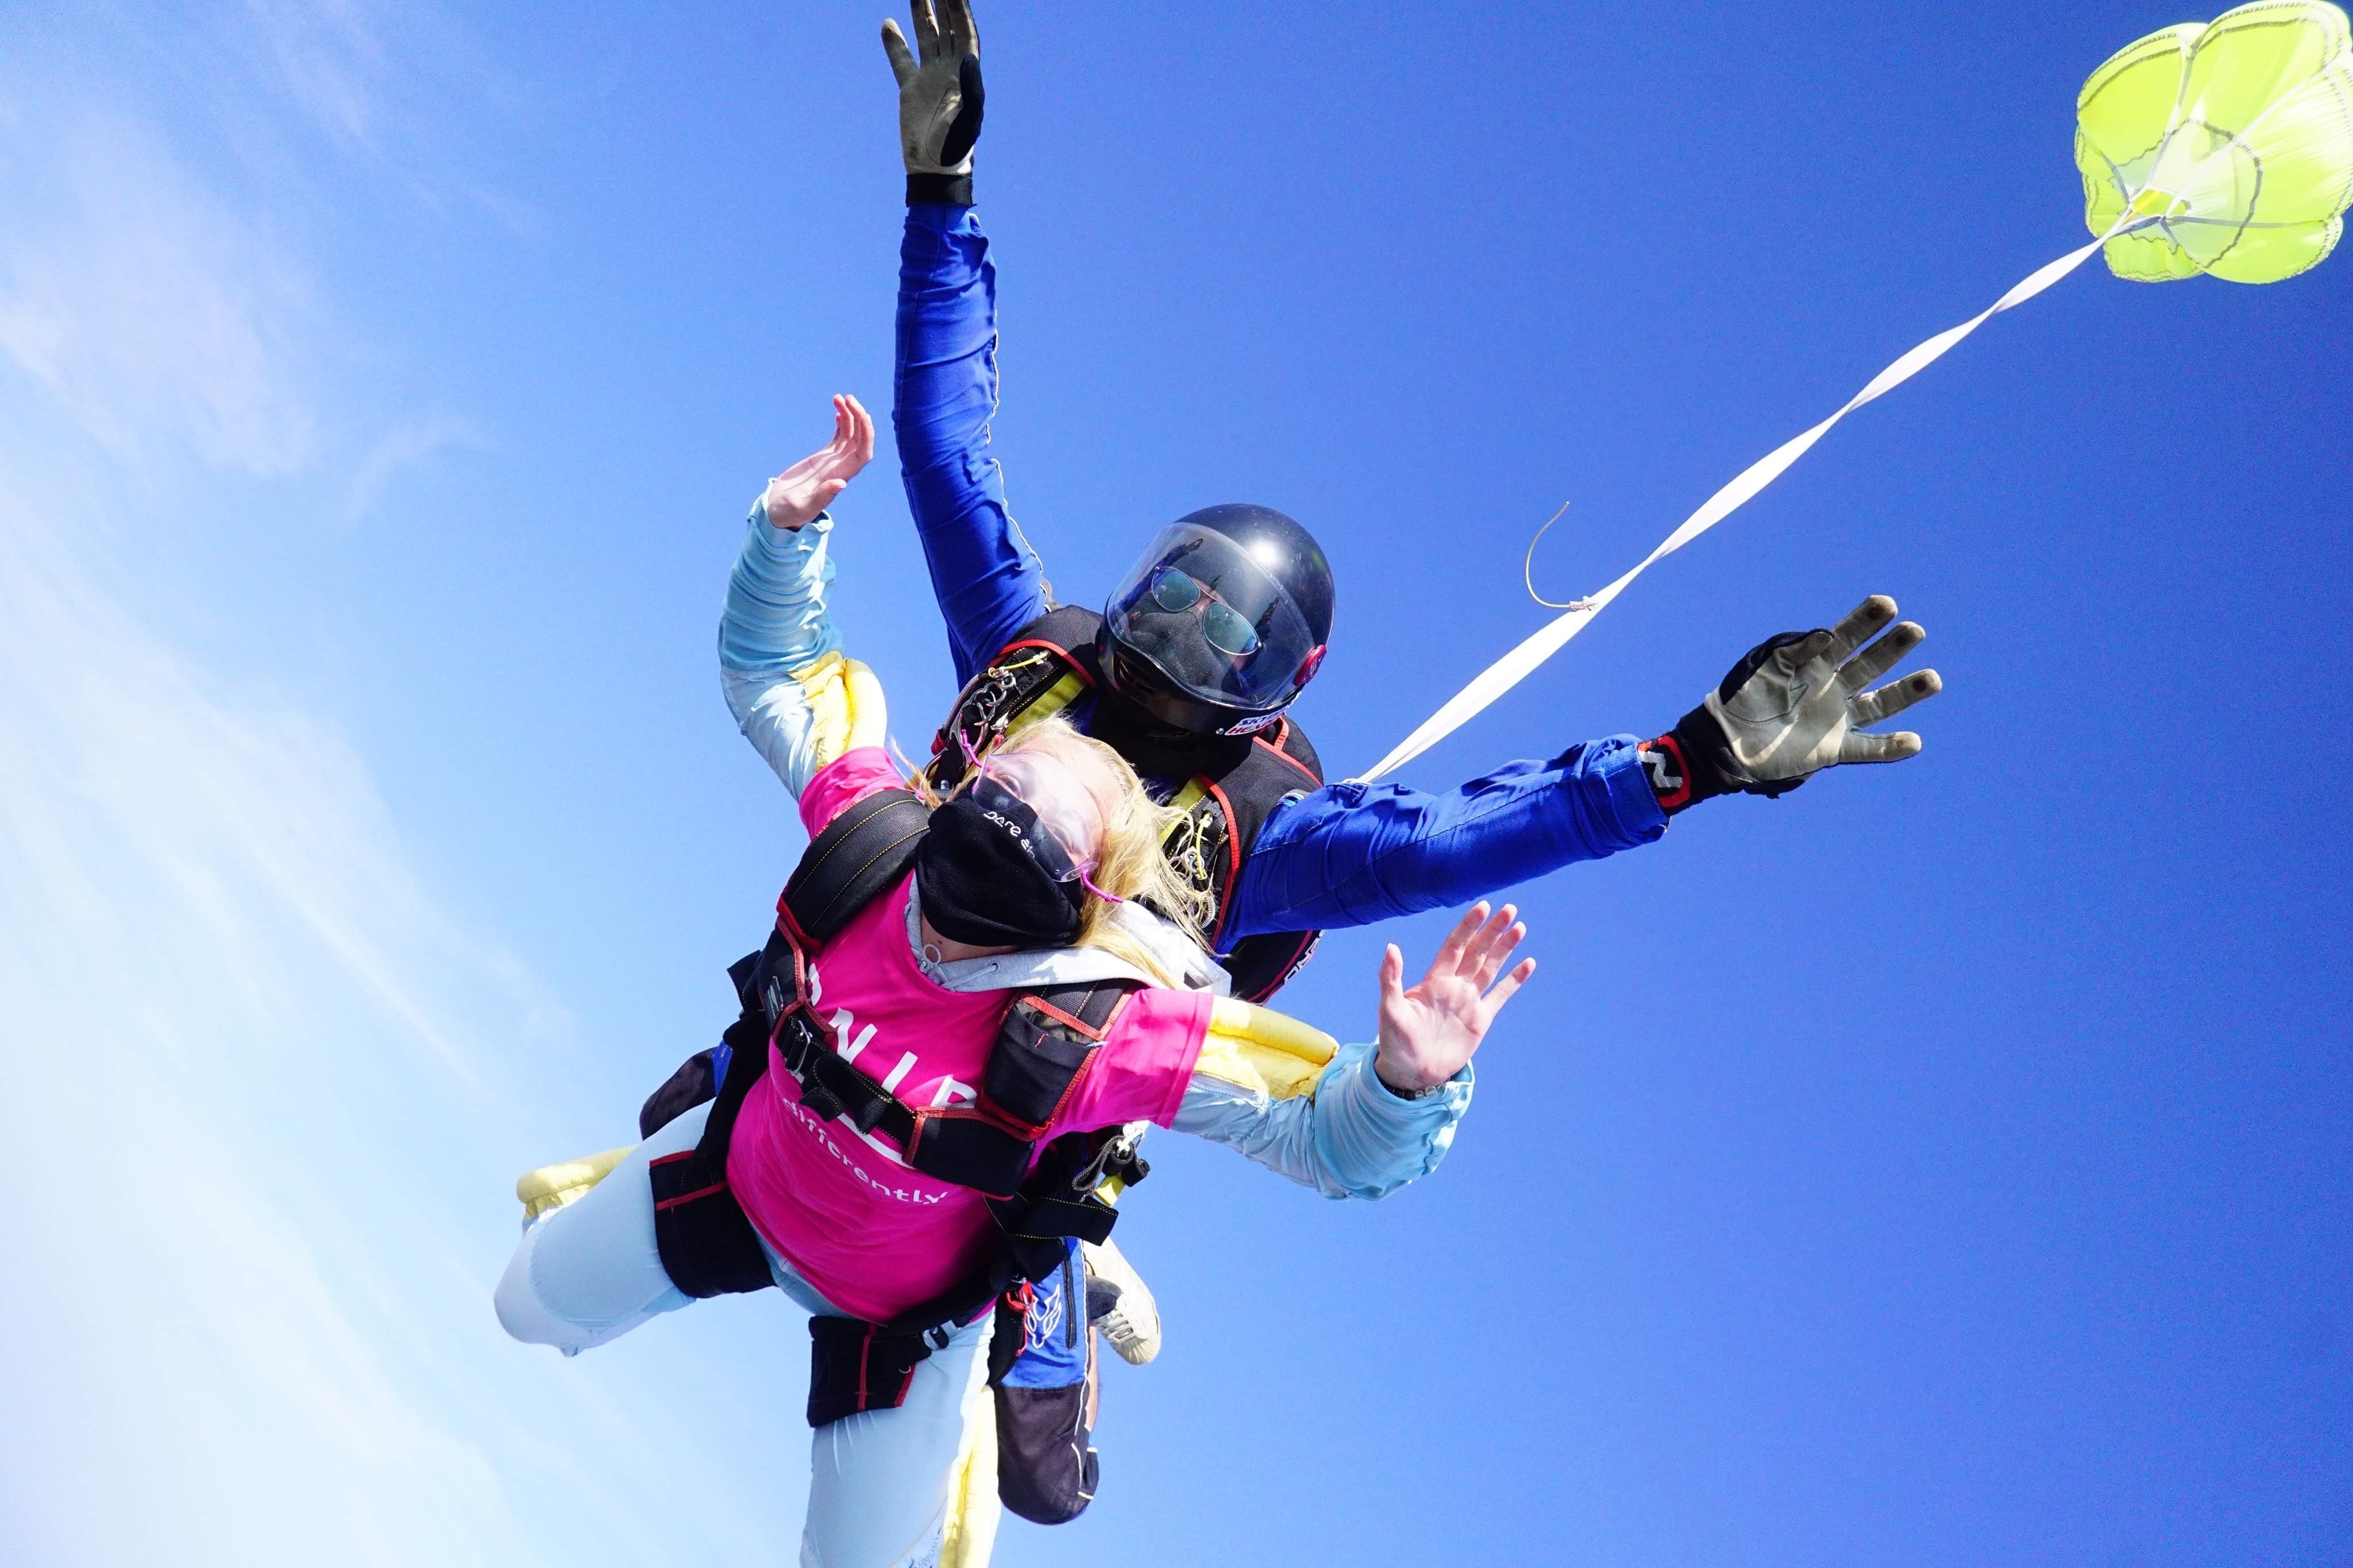 Daisy mid sky dive with her arms outstretched whilst wearing a mask